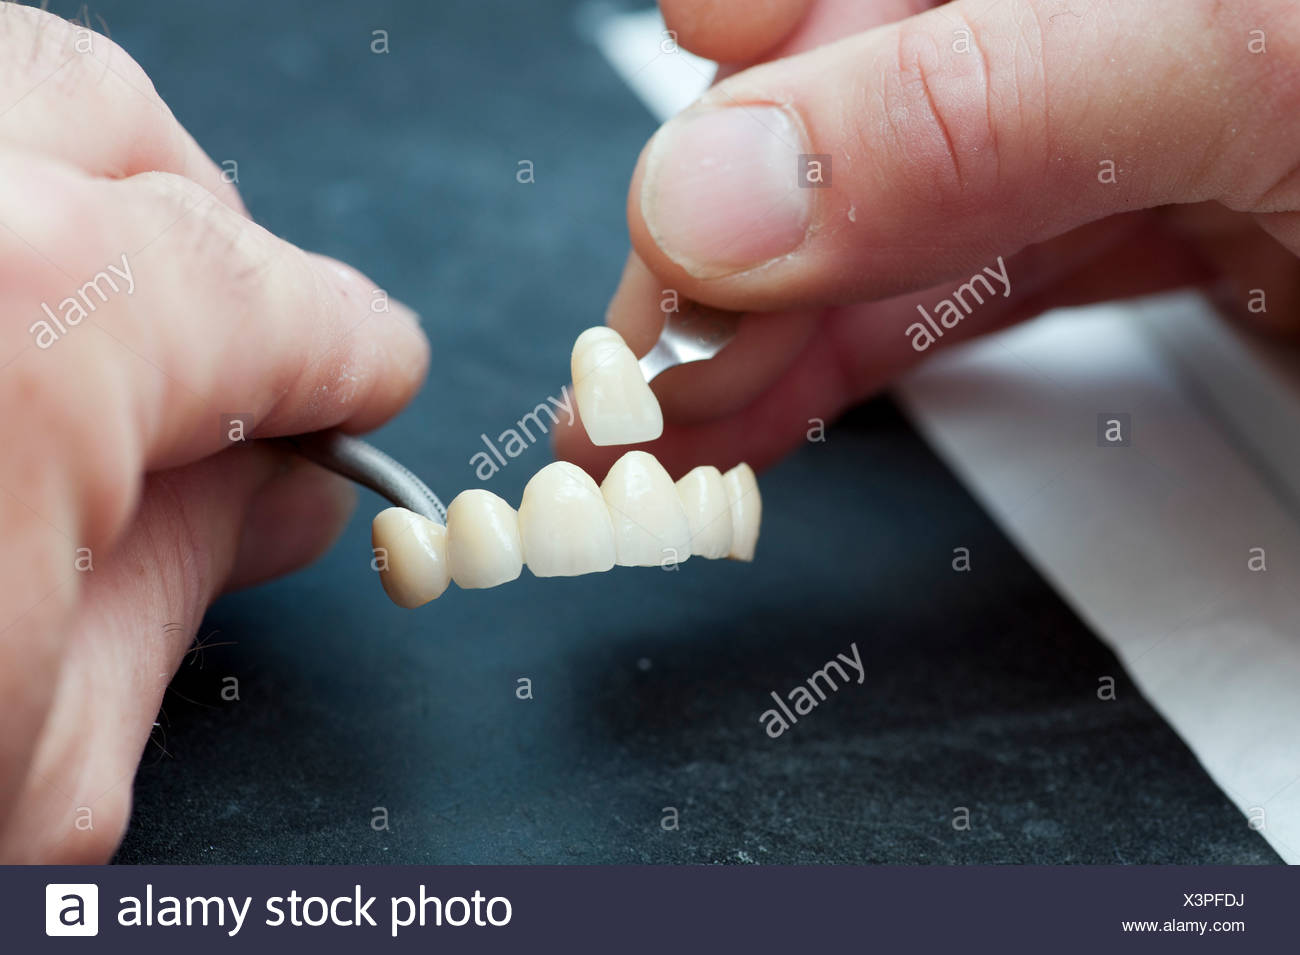 Color comparison of the dental crowns - Stock Image